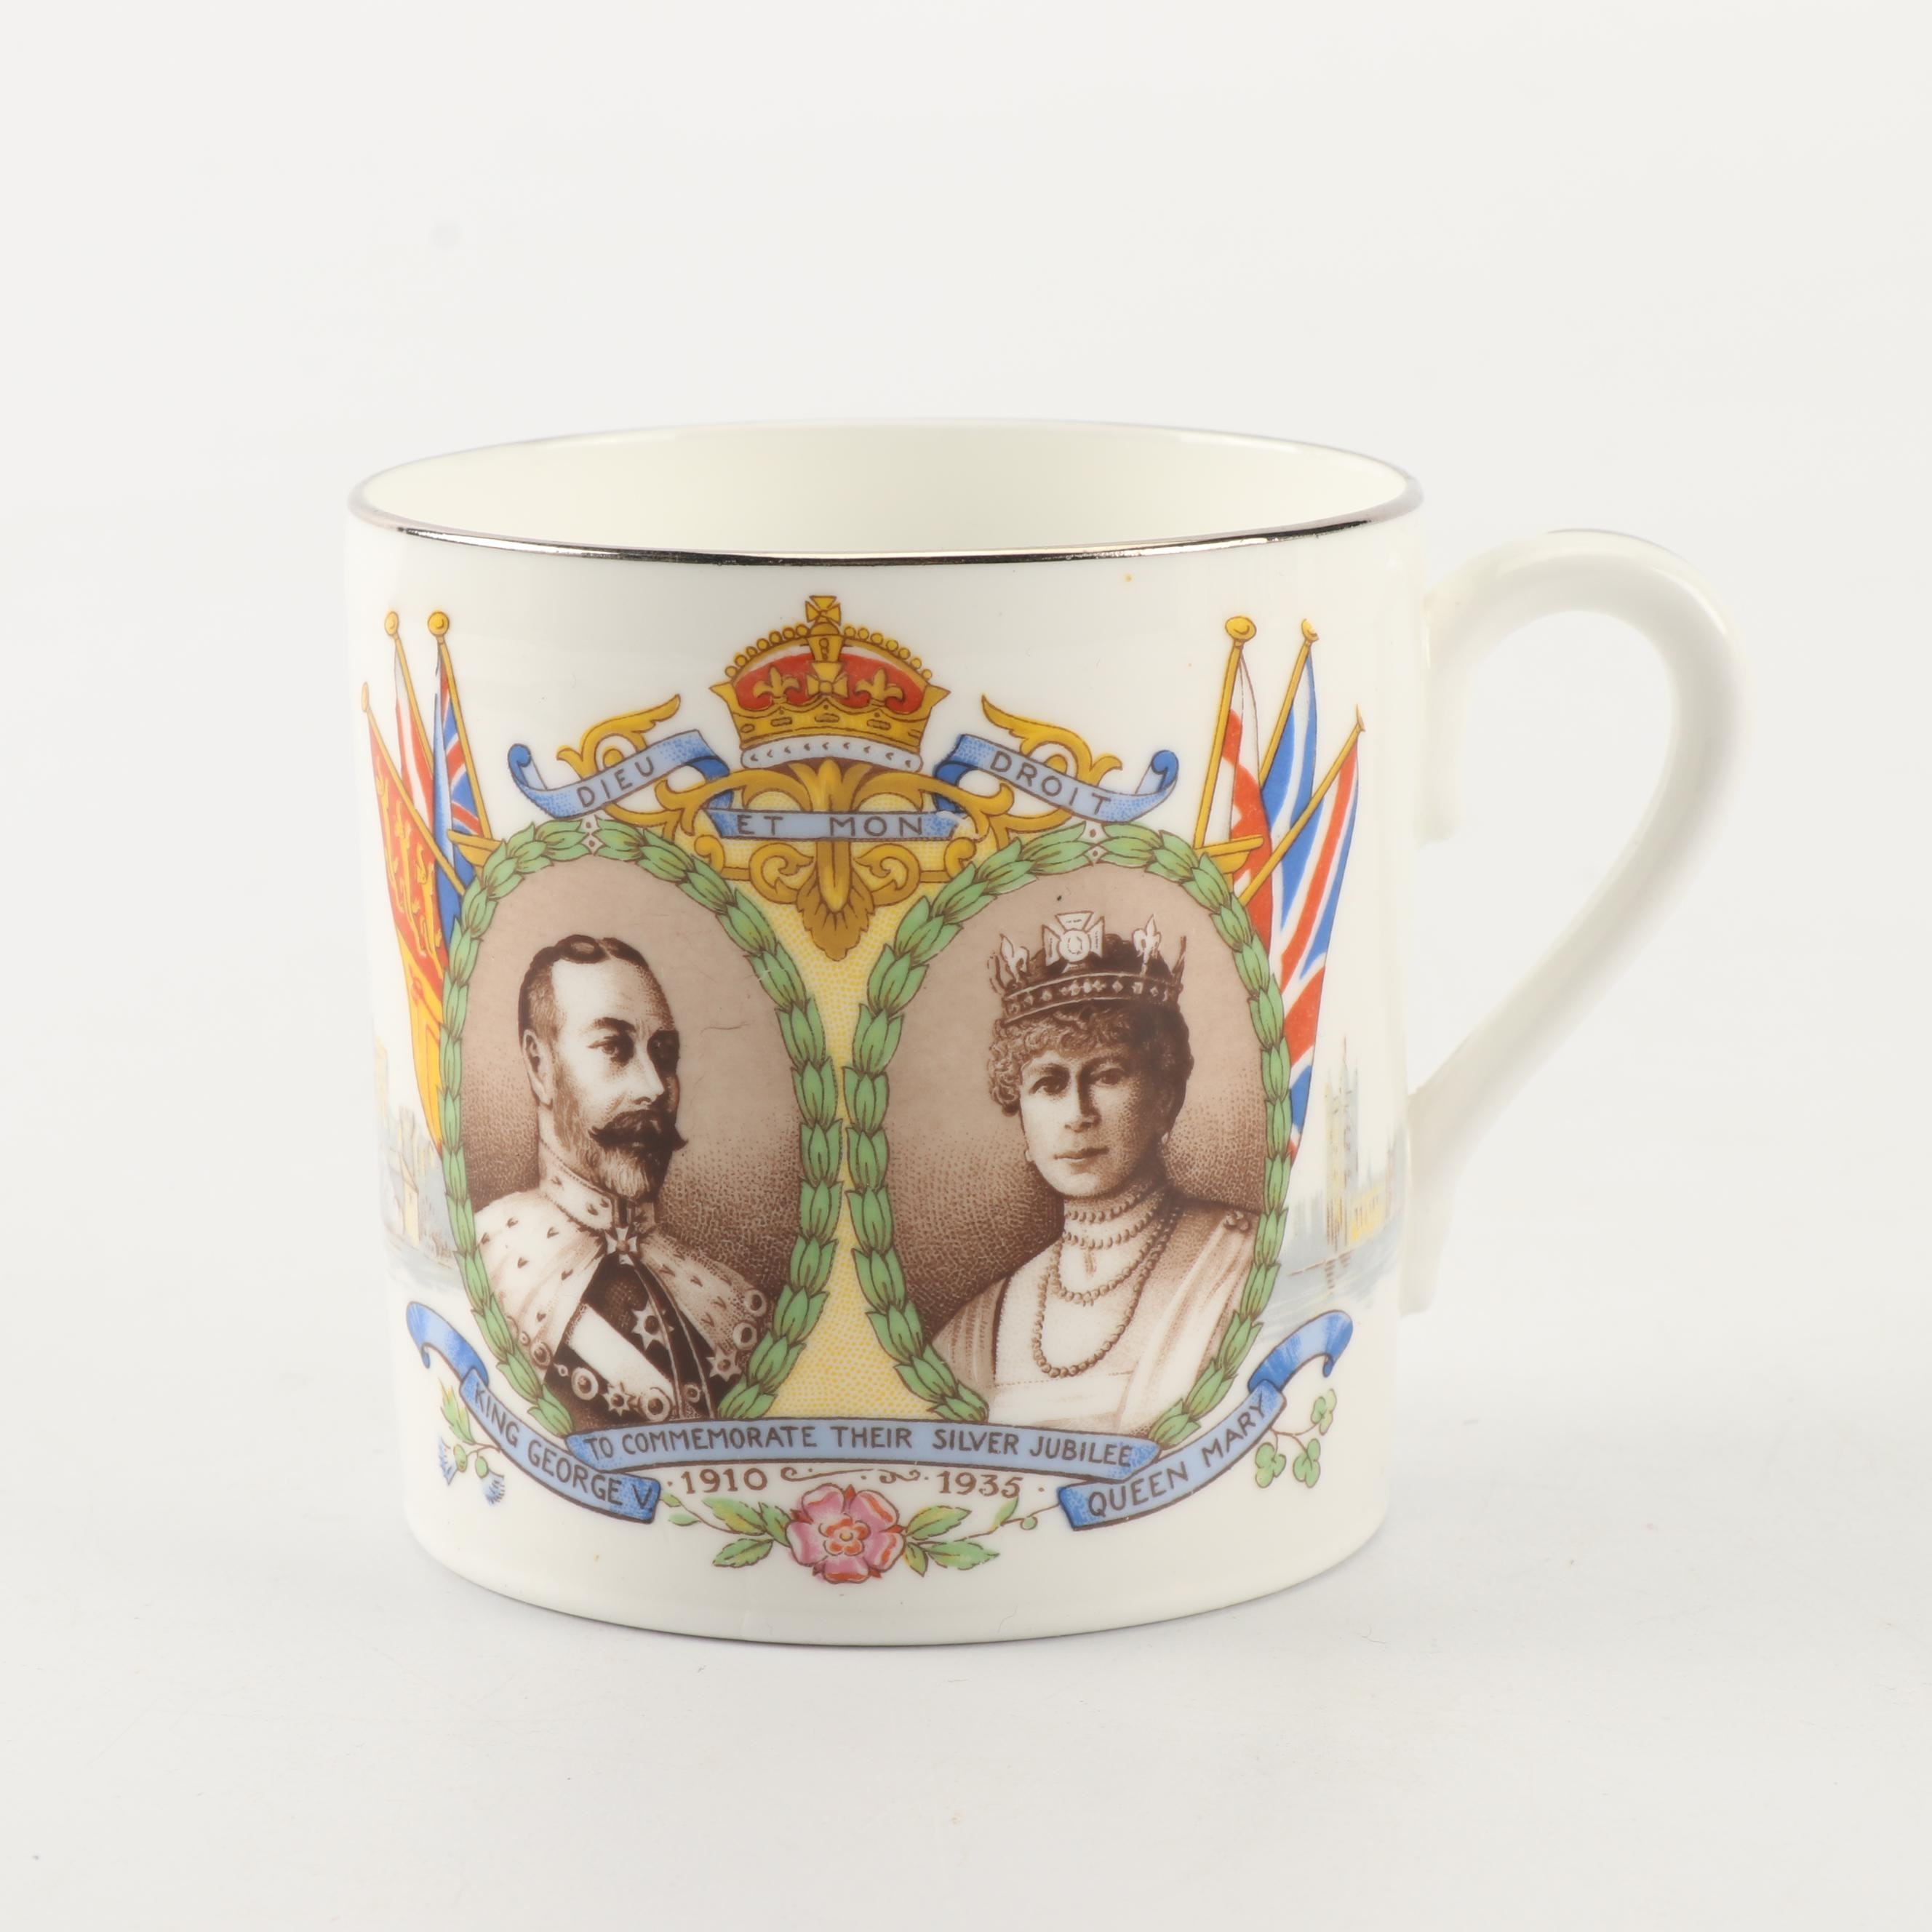 Ansley George V and Queen Mary Silver Jubilee Commemorative Bone China Mug, 1935